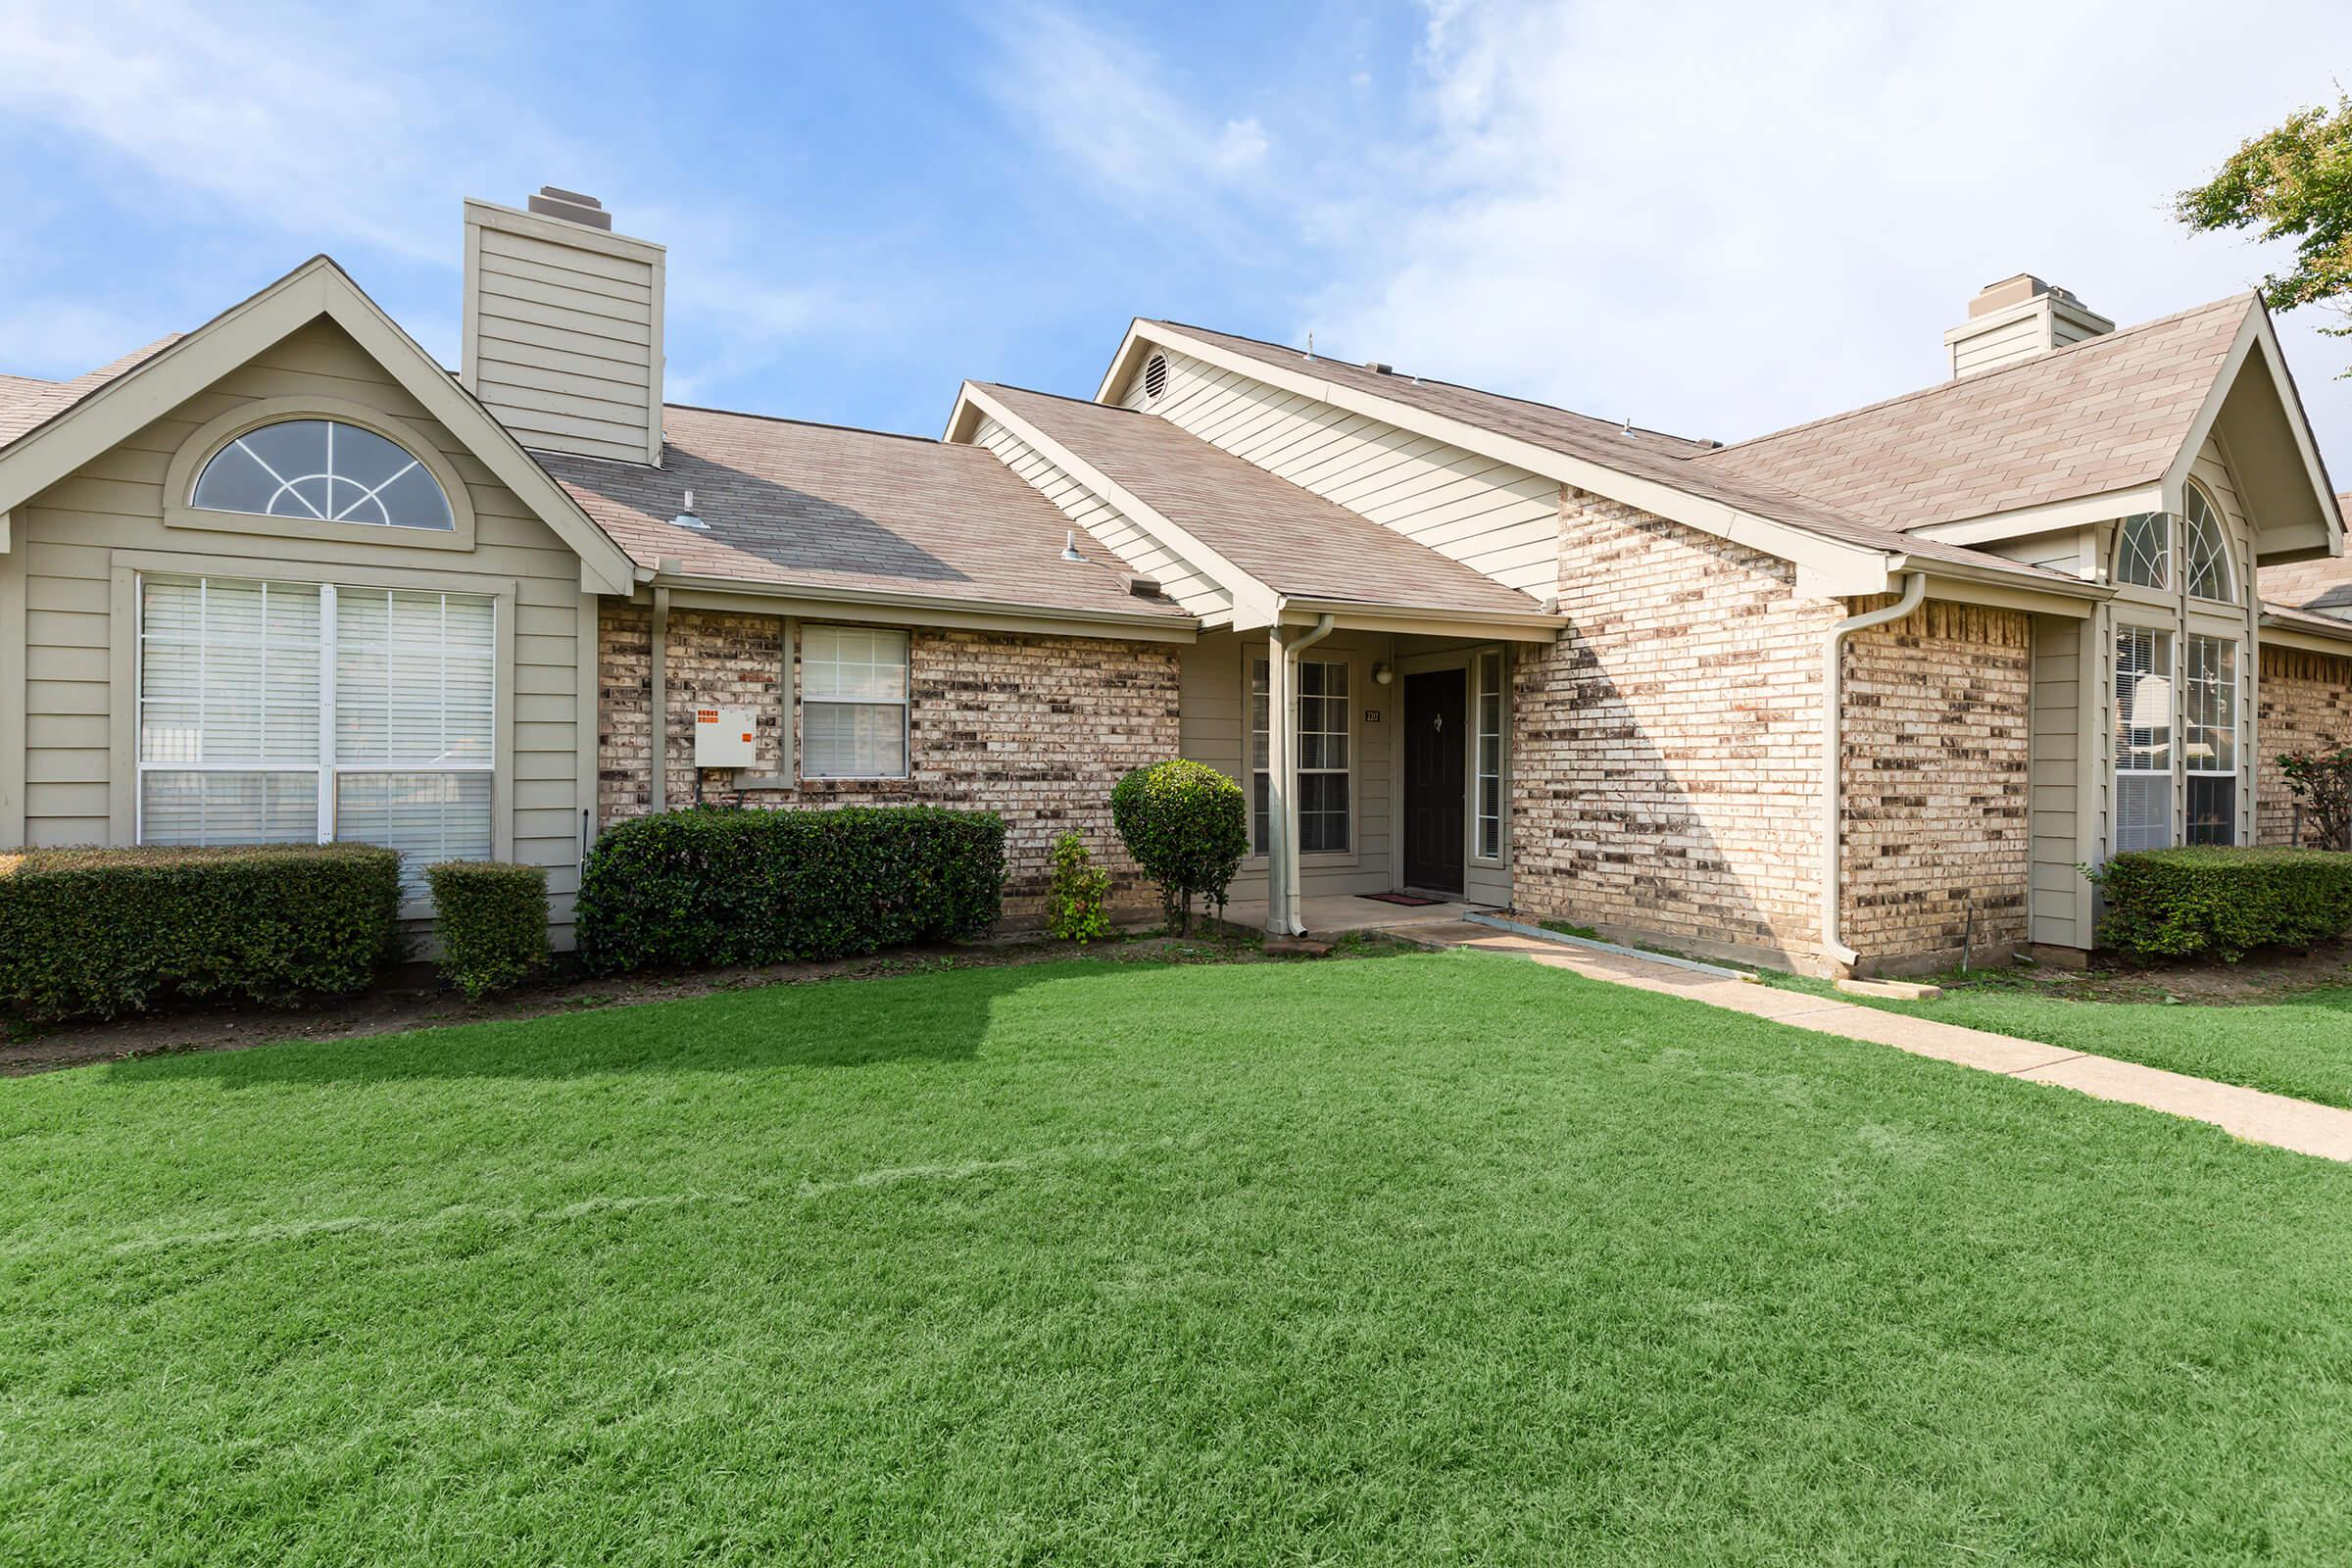 WELCOME TO PLANO PARK TOWNHOMES IN PLANO, TX